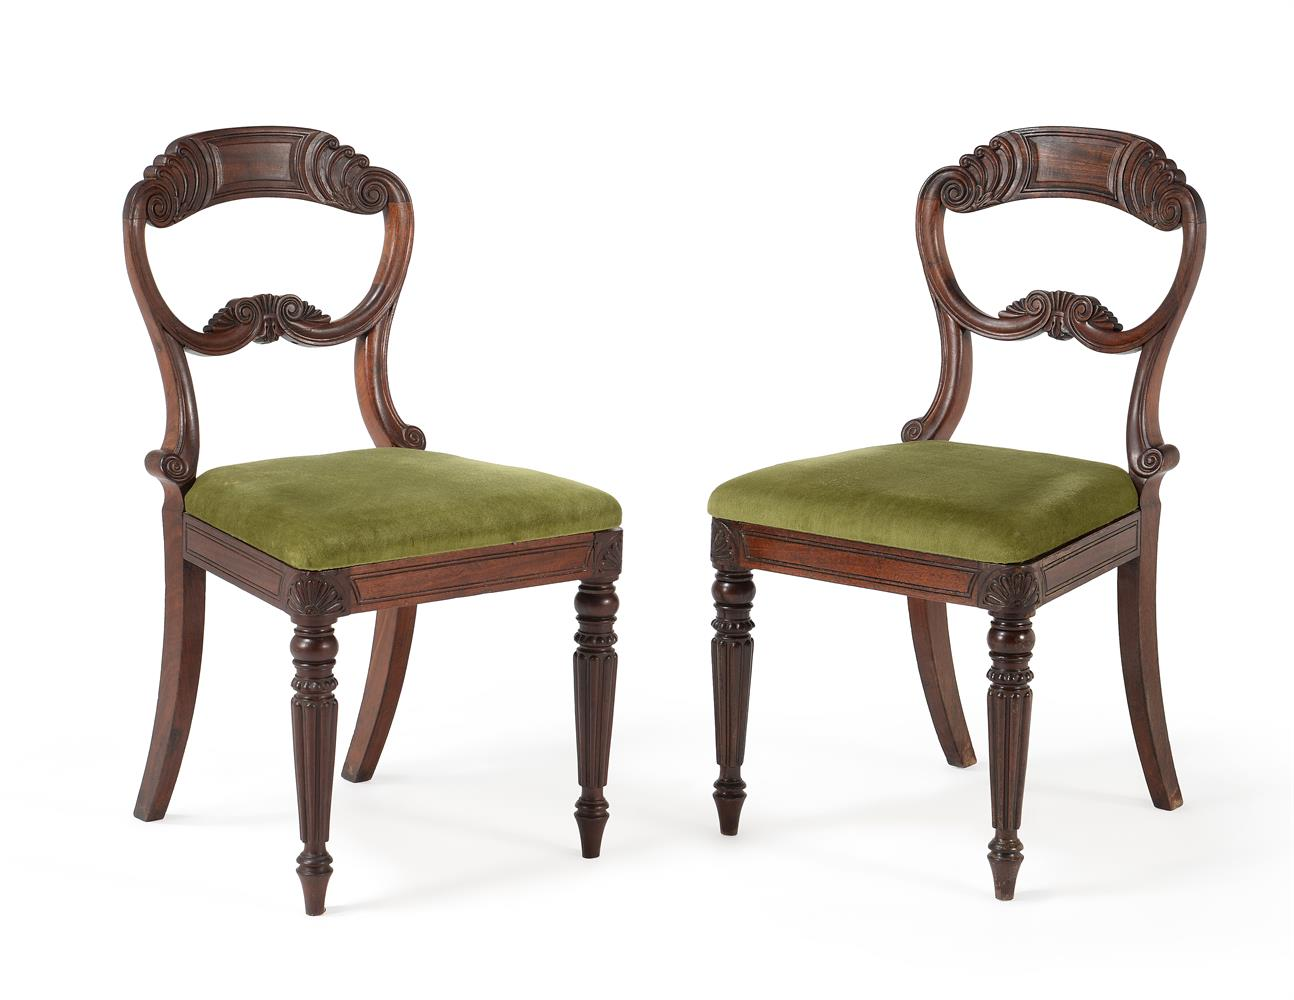 A SET OF EIGHT WILLIAM IV MAHOGANY DINING CHAIRS, CIRCA 1835, ATTRIBUTED TO GILLOWS - Image 2 of 9